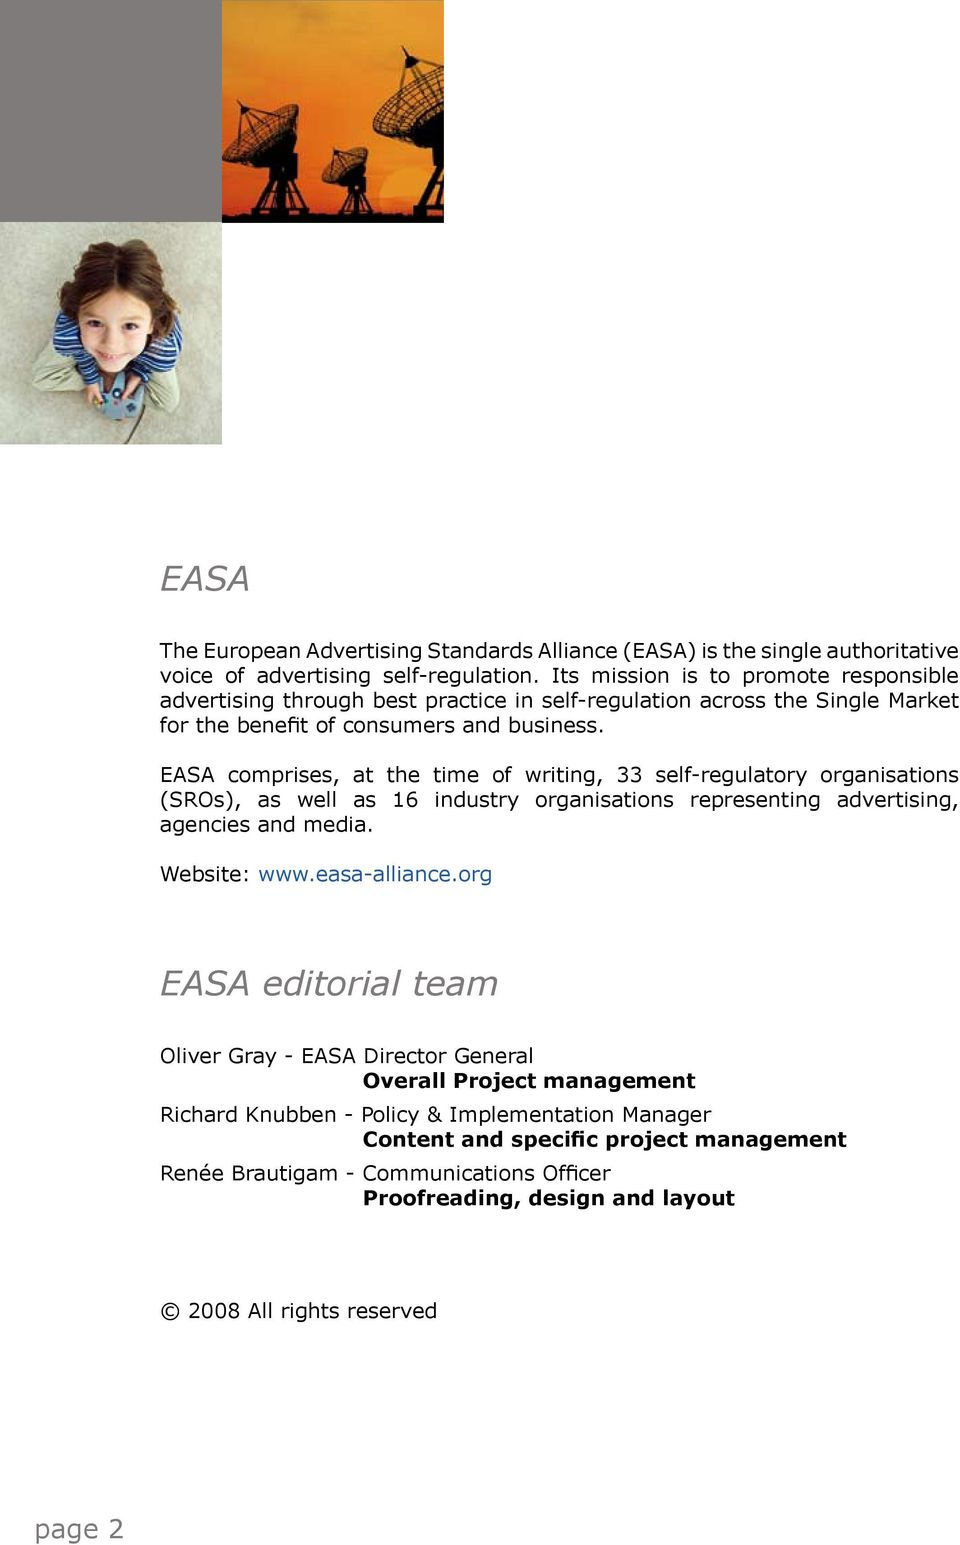 EASA comprises, at the time of writing, 33 self-regulatory organisations (SROs), as well as 16 industry organisations representing advertising, agencies and media. Website: www.